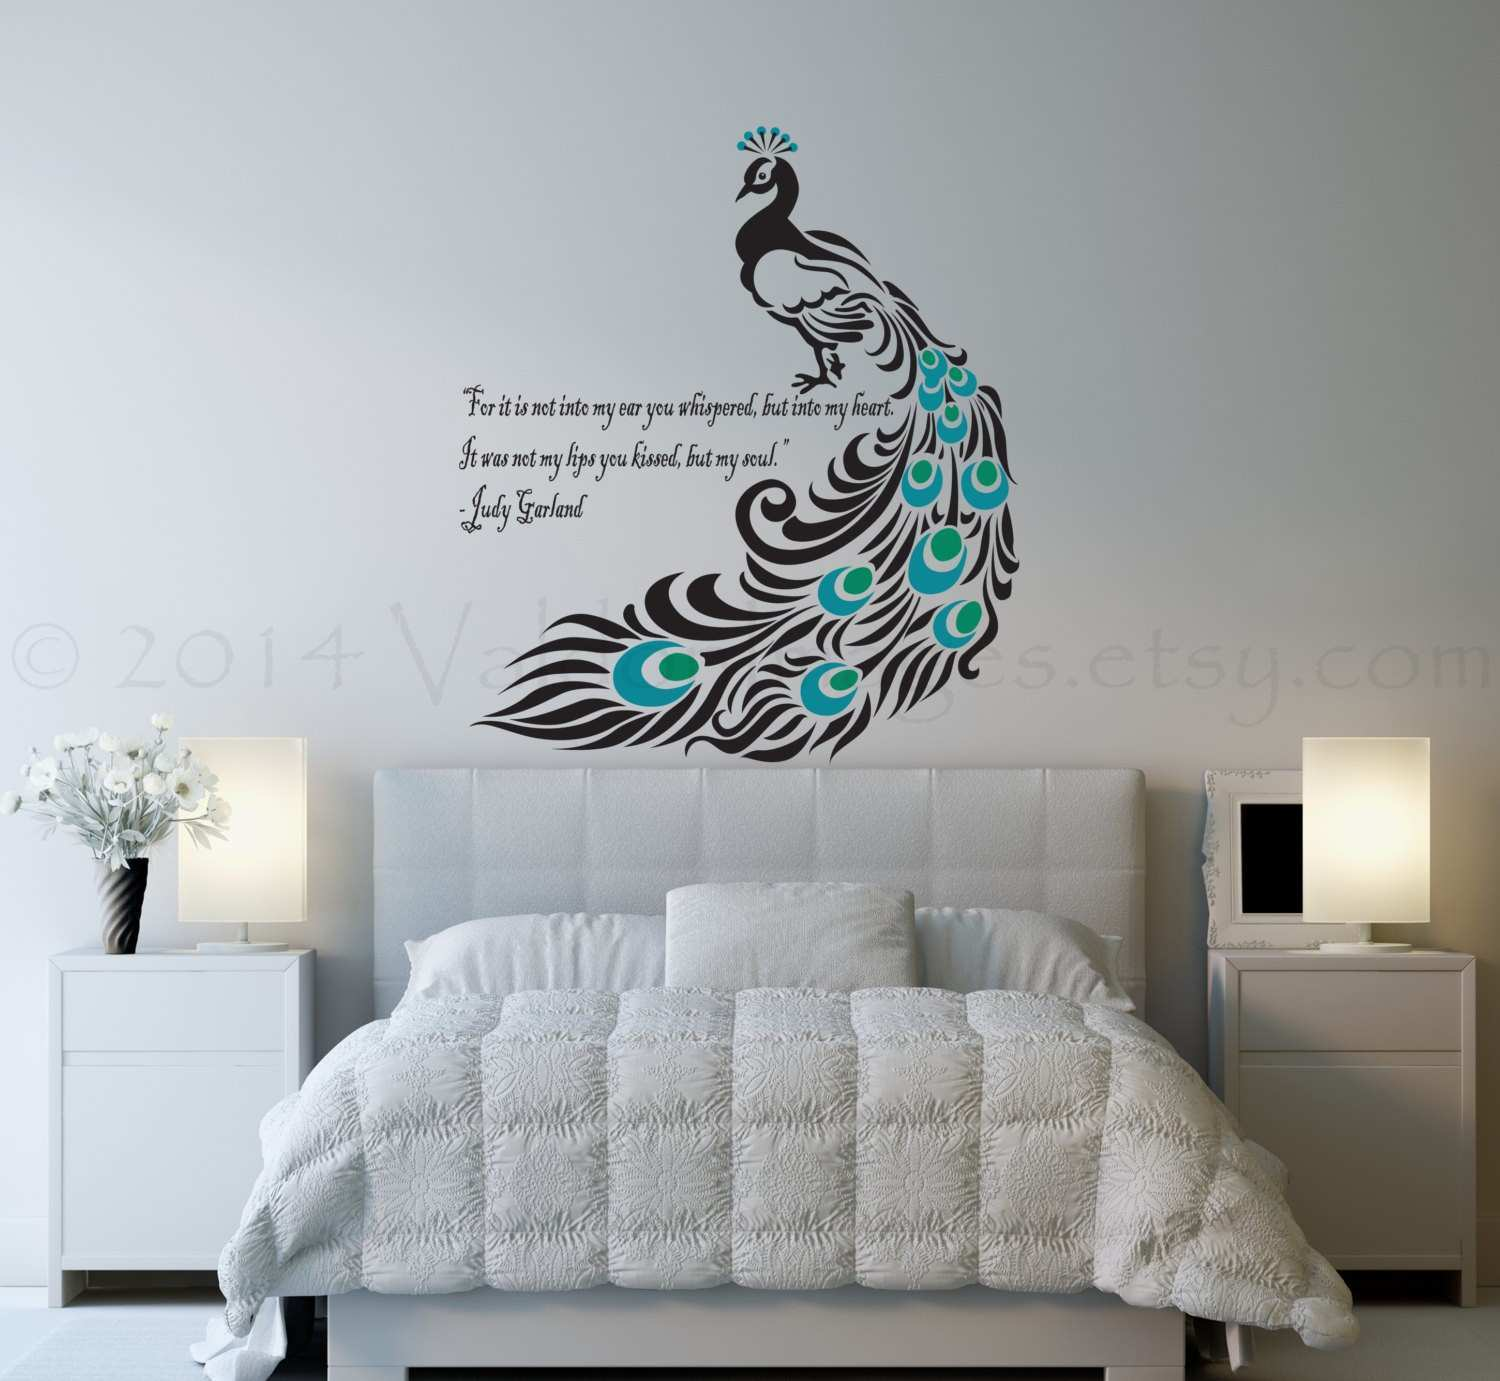 Framed Feather Wall Art Best Of Amusing Wall Art Ideas for Bedroom 6 Designs Personalised Name Tree